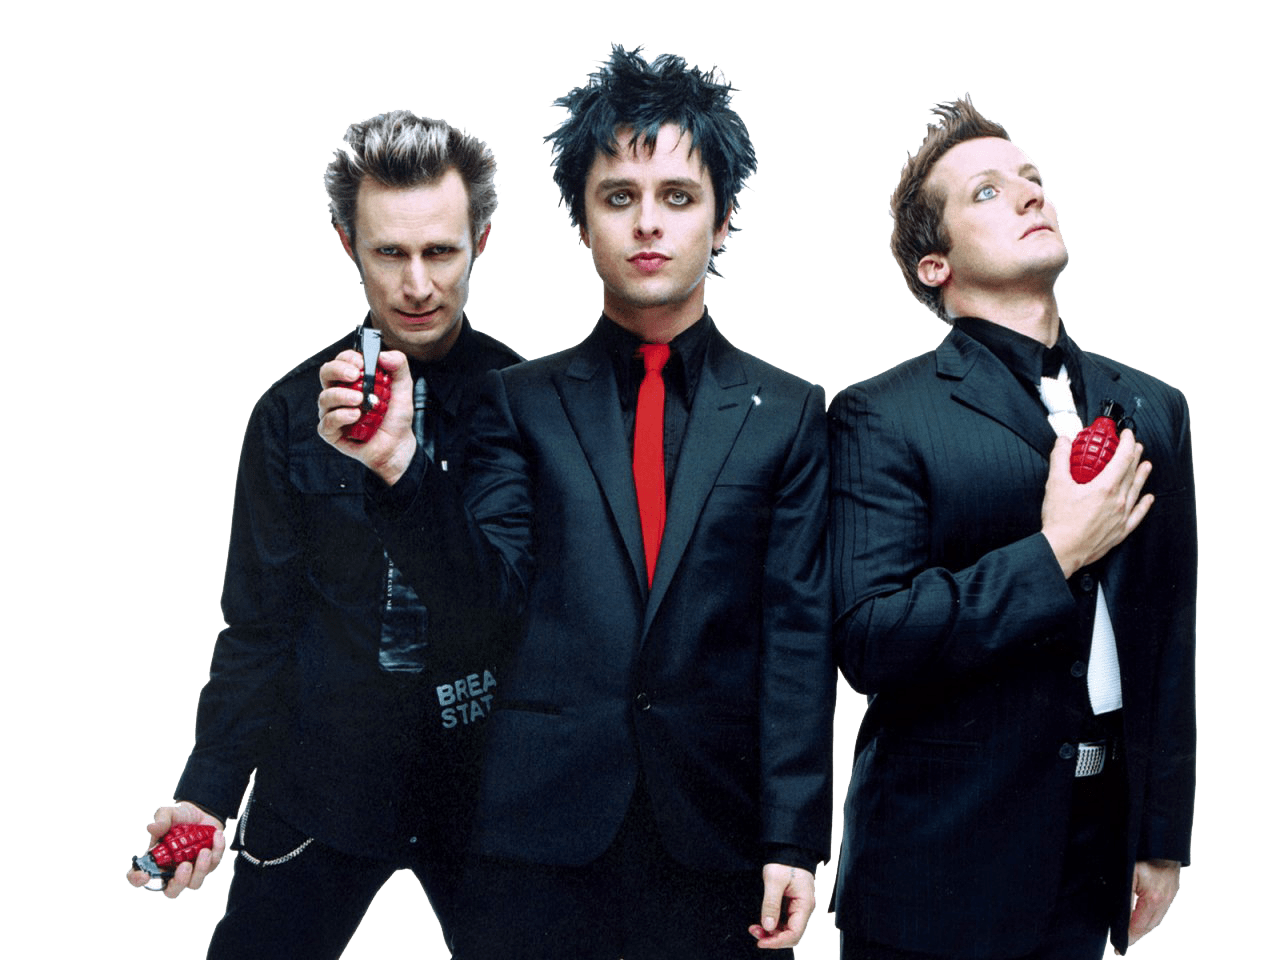 Green day band logo png. Transparent stickpng download music